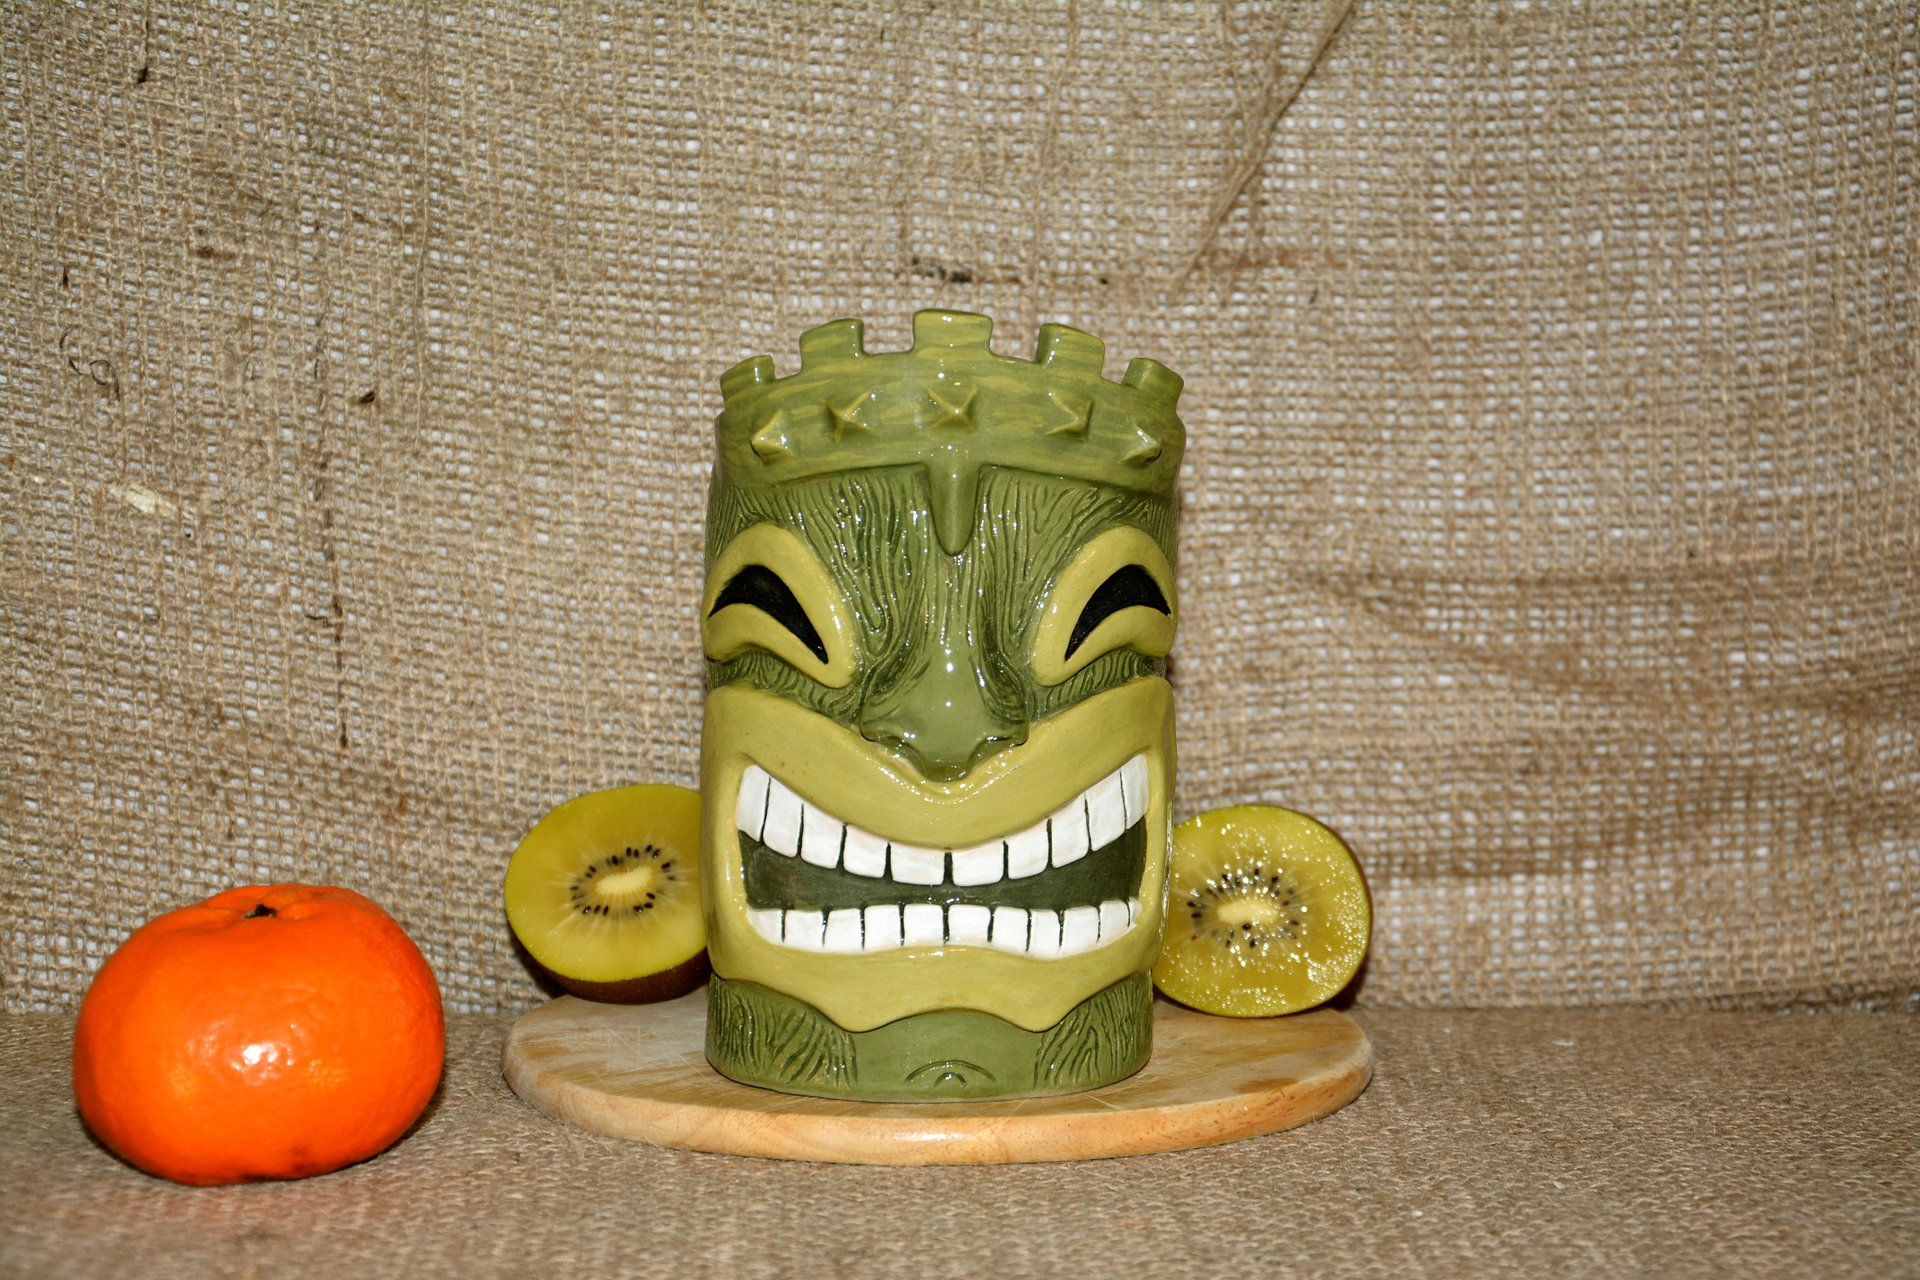 Huge Tiki Glass, color- green, height - 14 cm, volume - 0,7 l, photo 1 of 5.